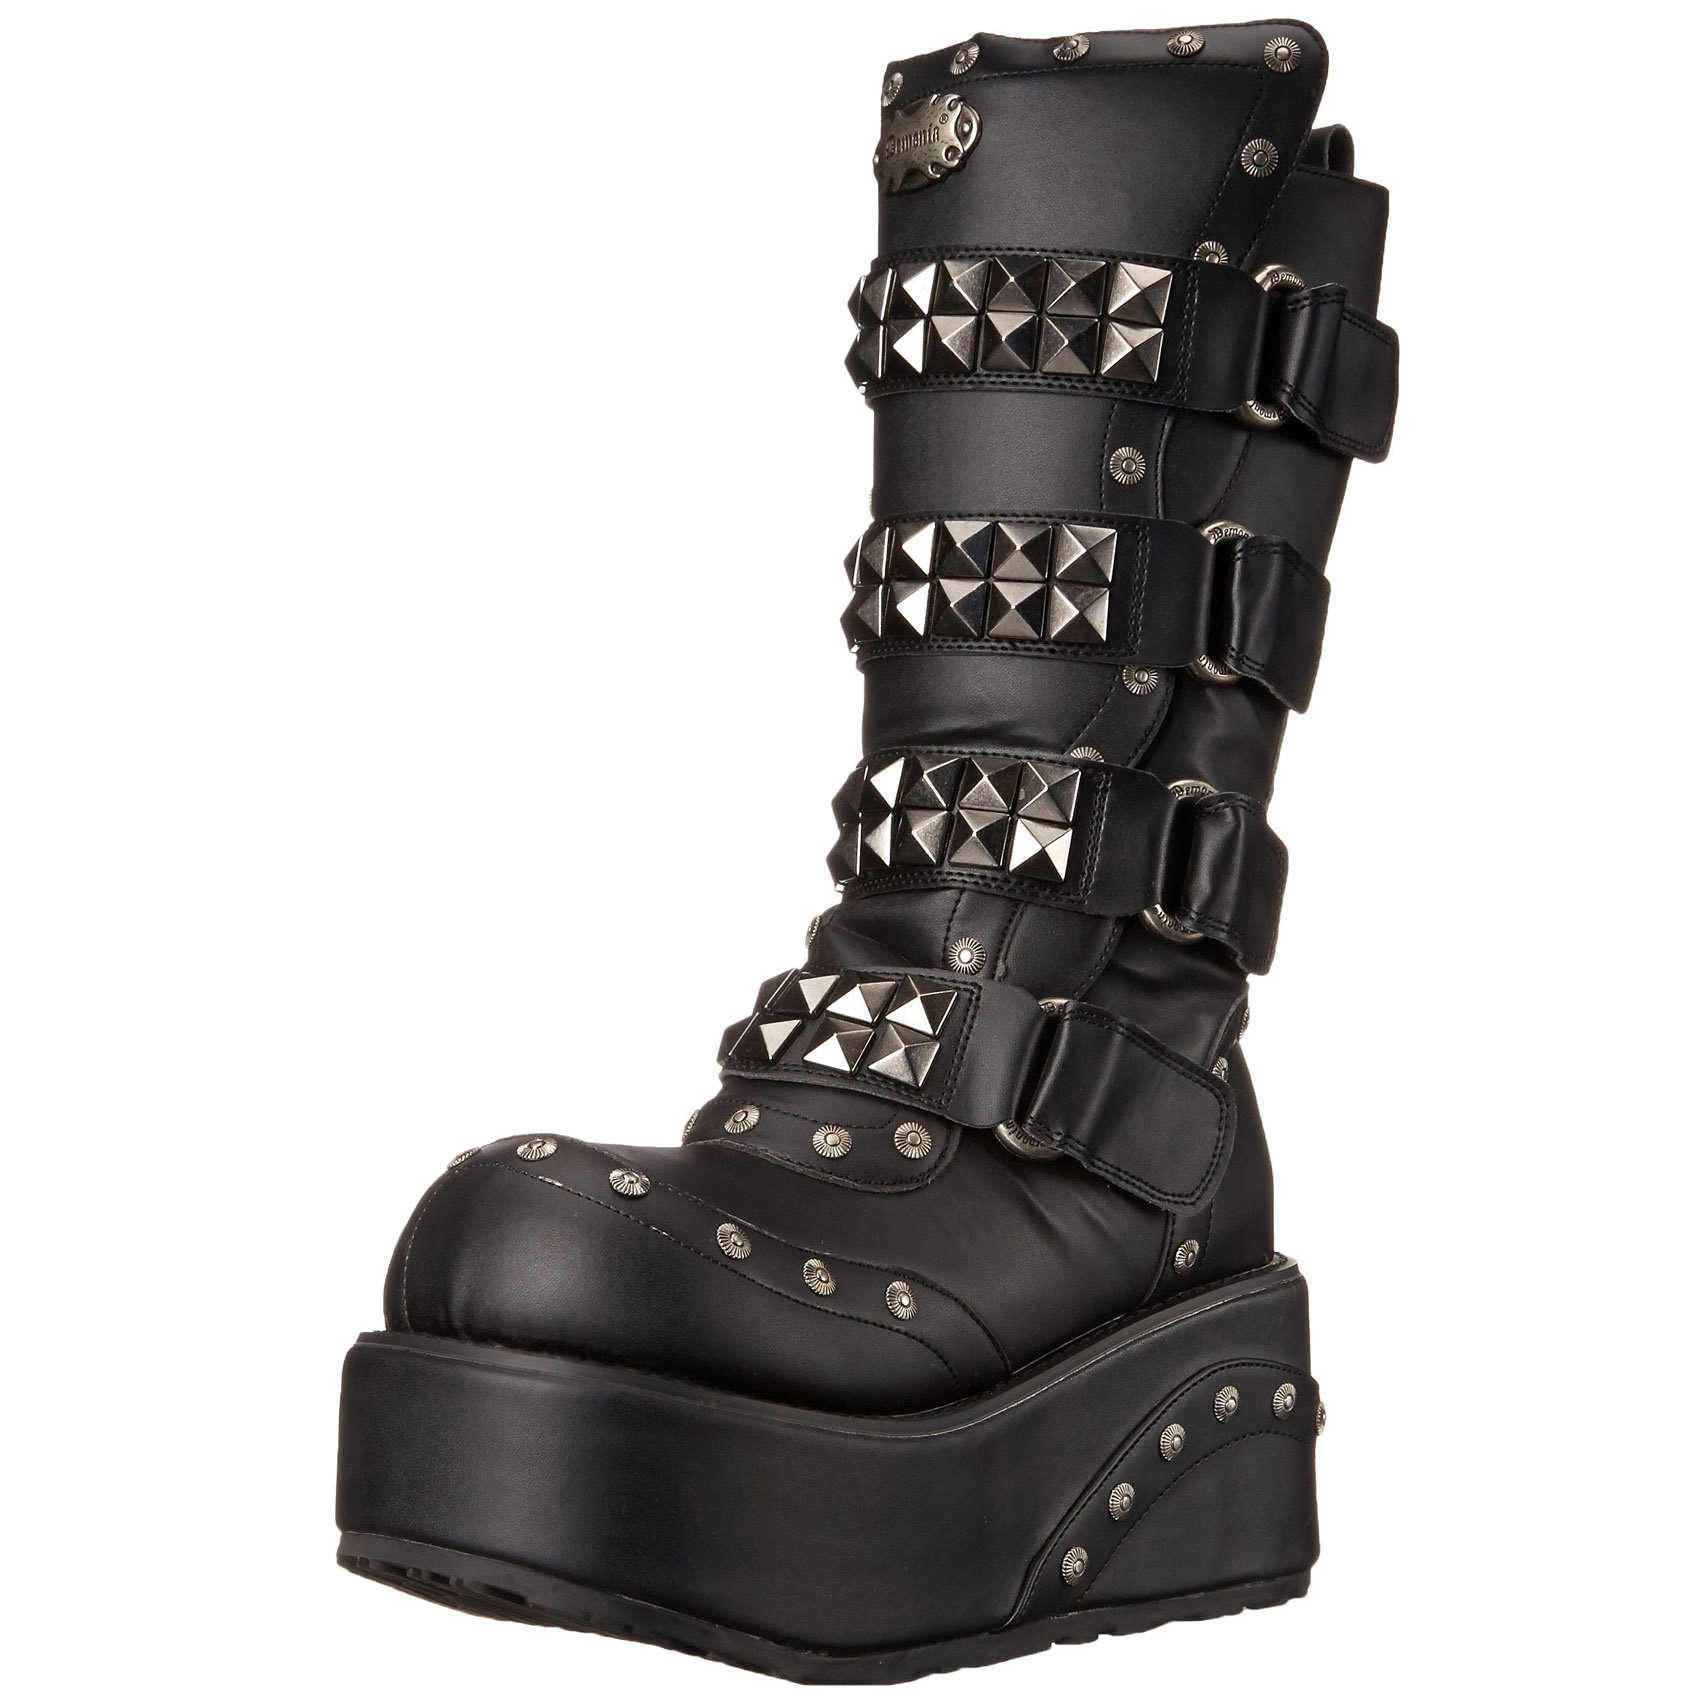 Mens 3 1/4 Wedge Boots Calf Boots Studs Pyramid Hardware Gothic MENS SIZING Size: 8